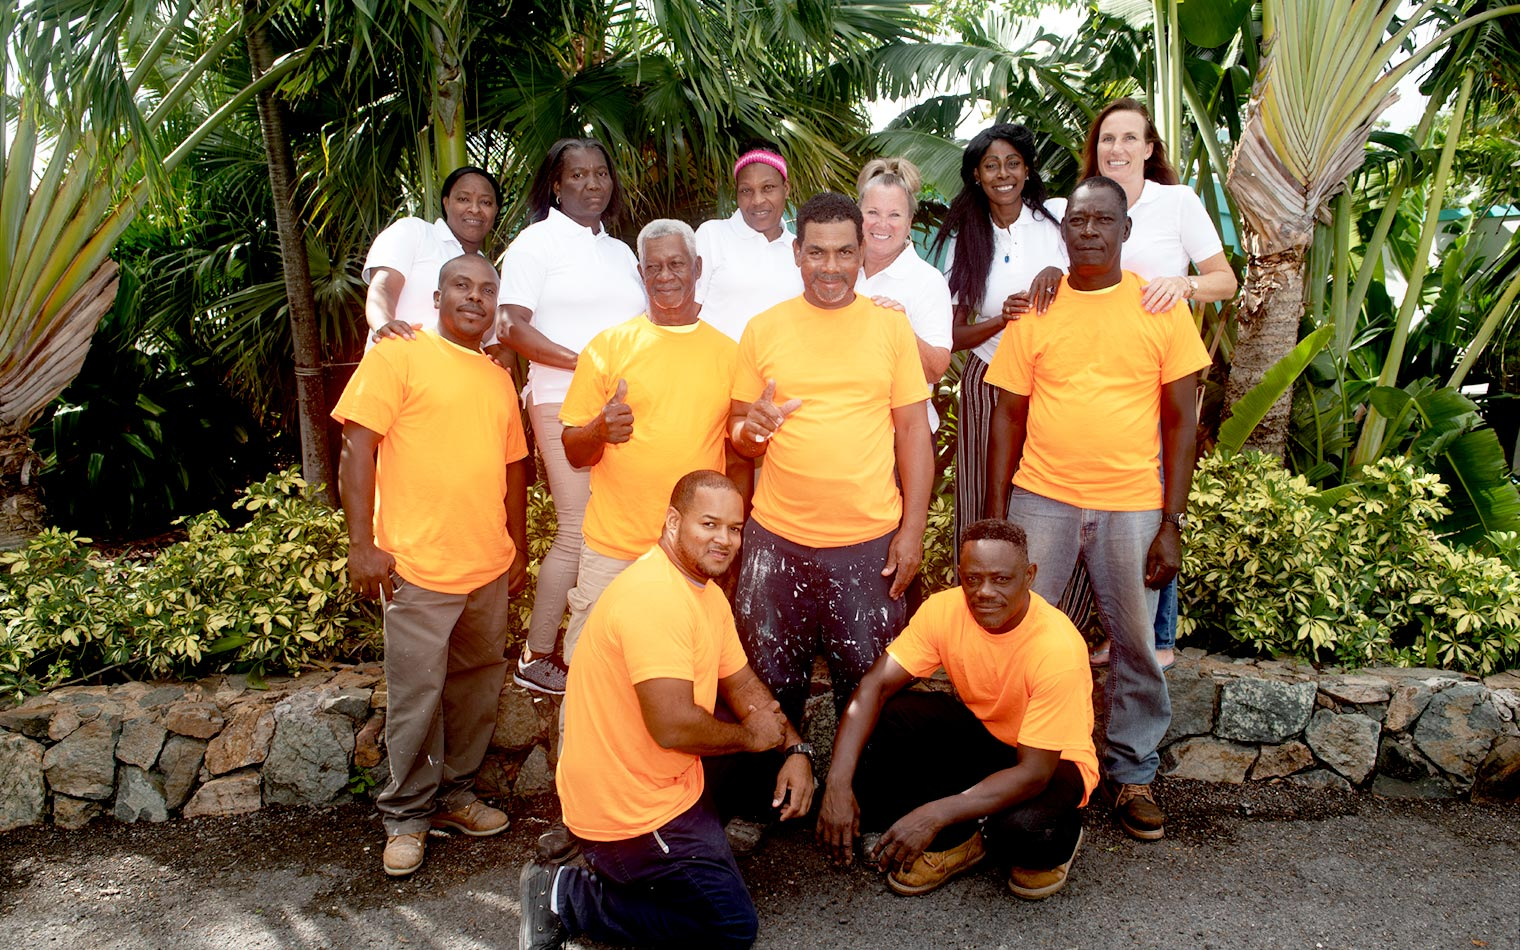 The housekeeping, groundskeeping, maintenance, and office staff at Flamboyan on the Bay